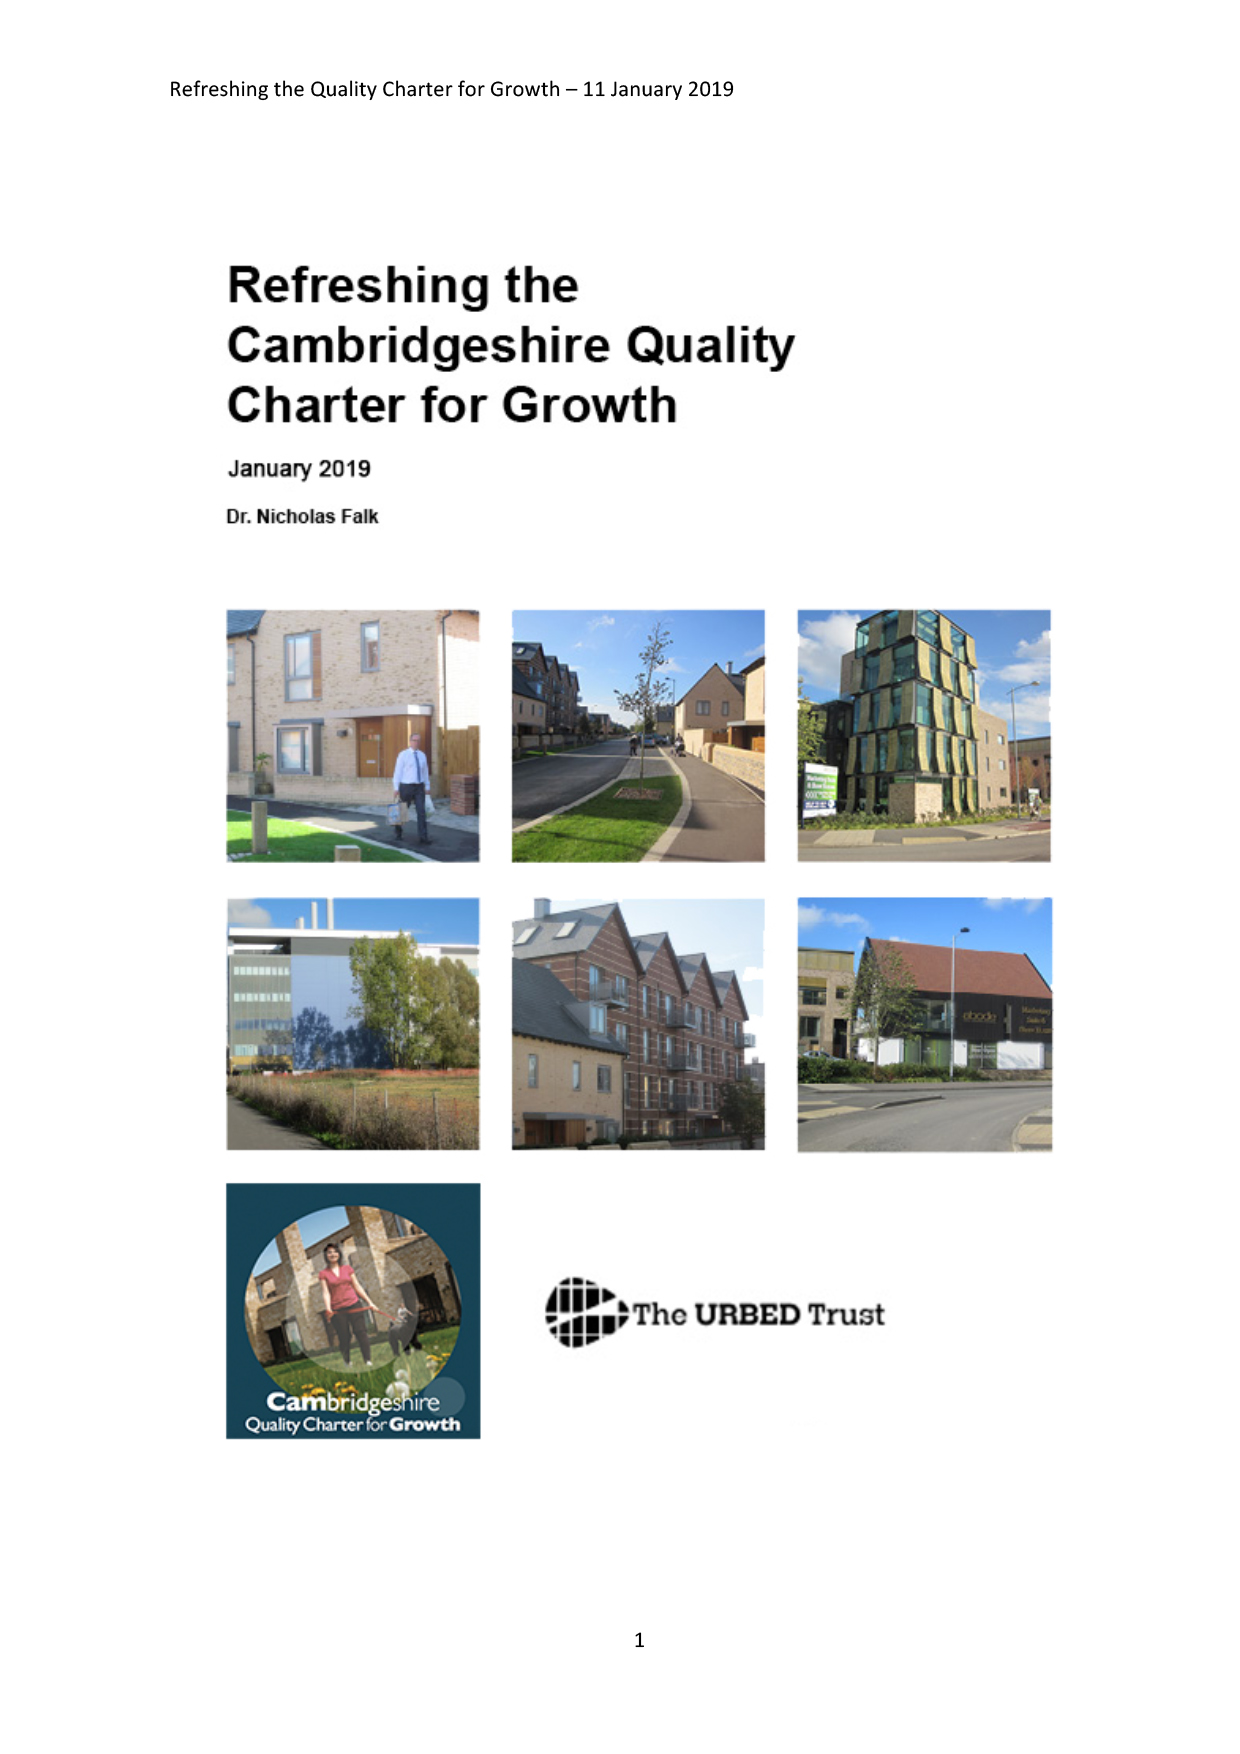 Refreshing the Cambridgeshire Quality Charter for Growth